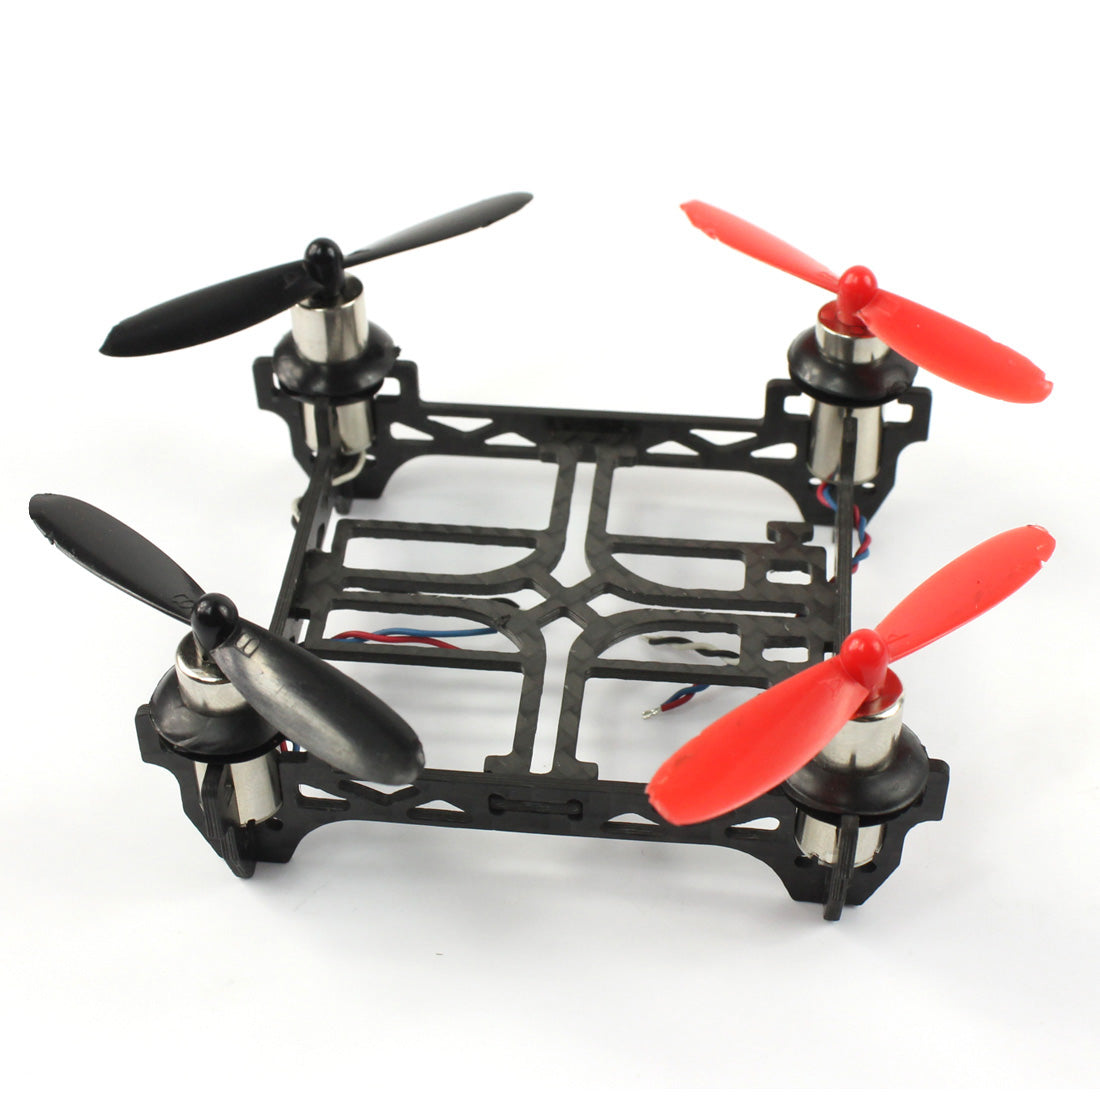 QWinOut Tiny QX80 Carbon Fiber Indoor FPV Racing QuardCopter Frame with 1S 3.7V 8520 8.5x20mm Mini Brush Motors Props DIY Drone